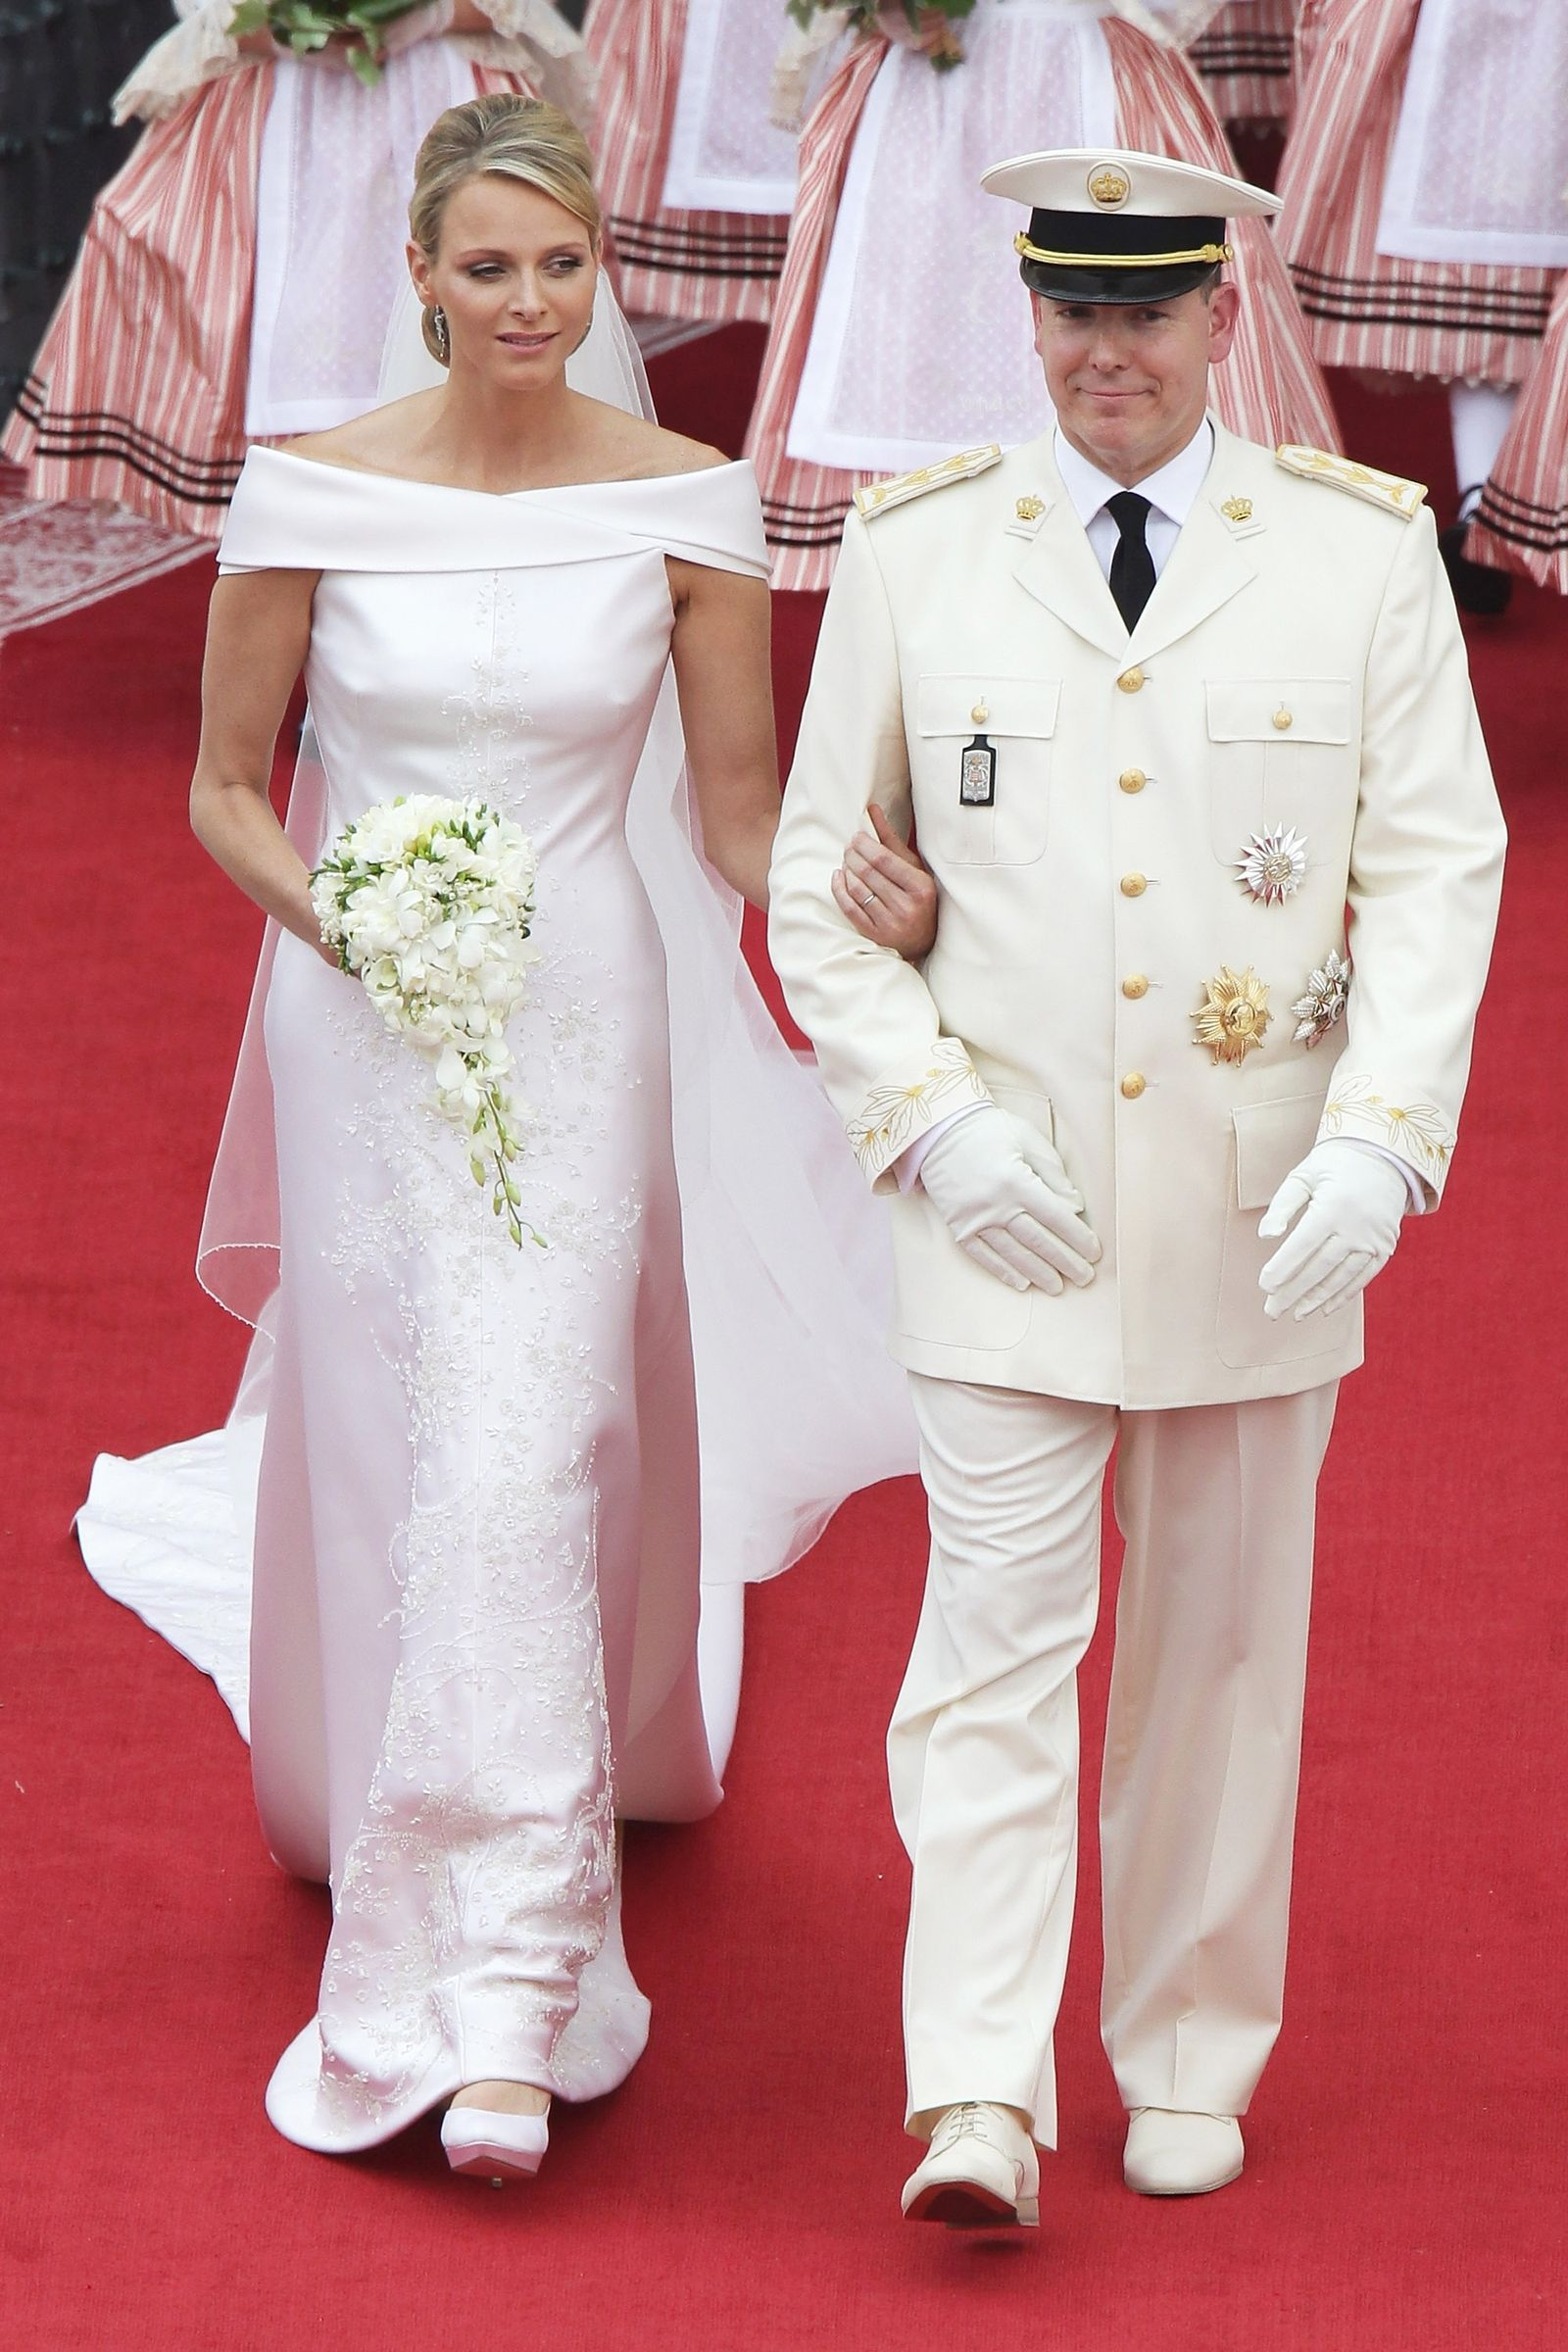 The Most Iconic Royal Wedding Gowns of All Time | Royal wedding ...